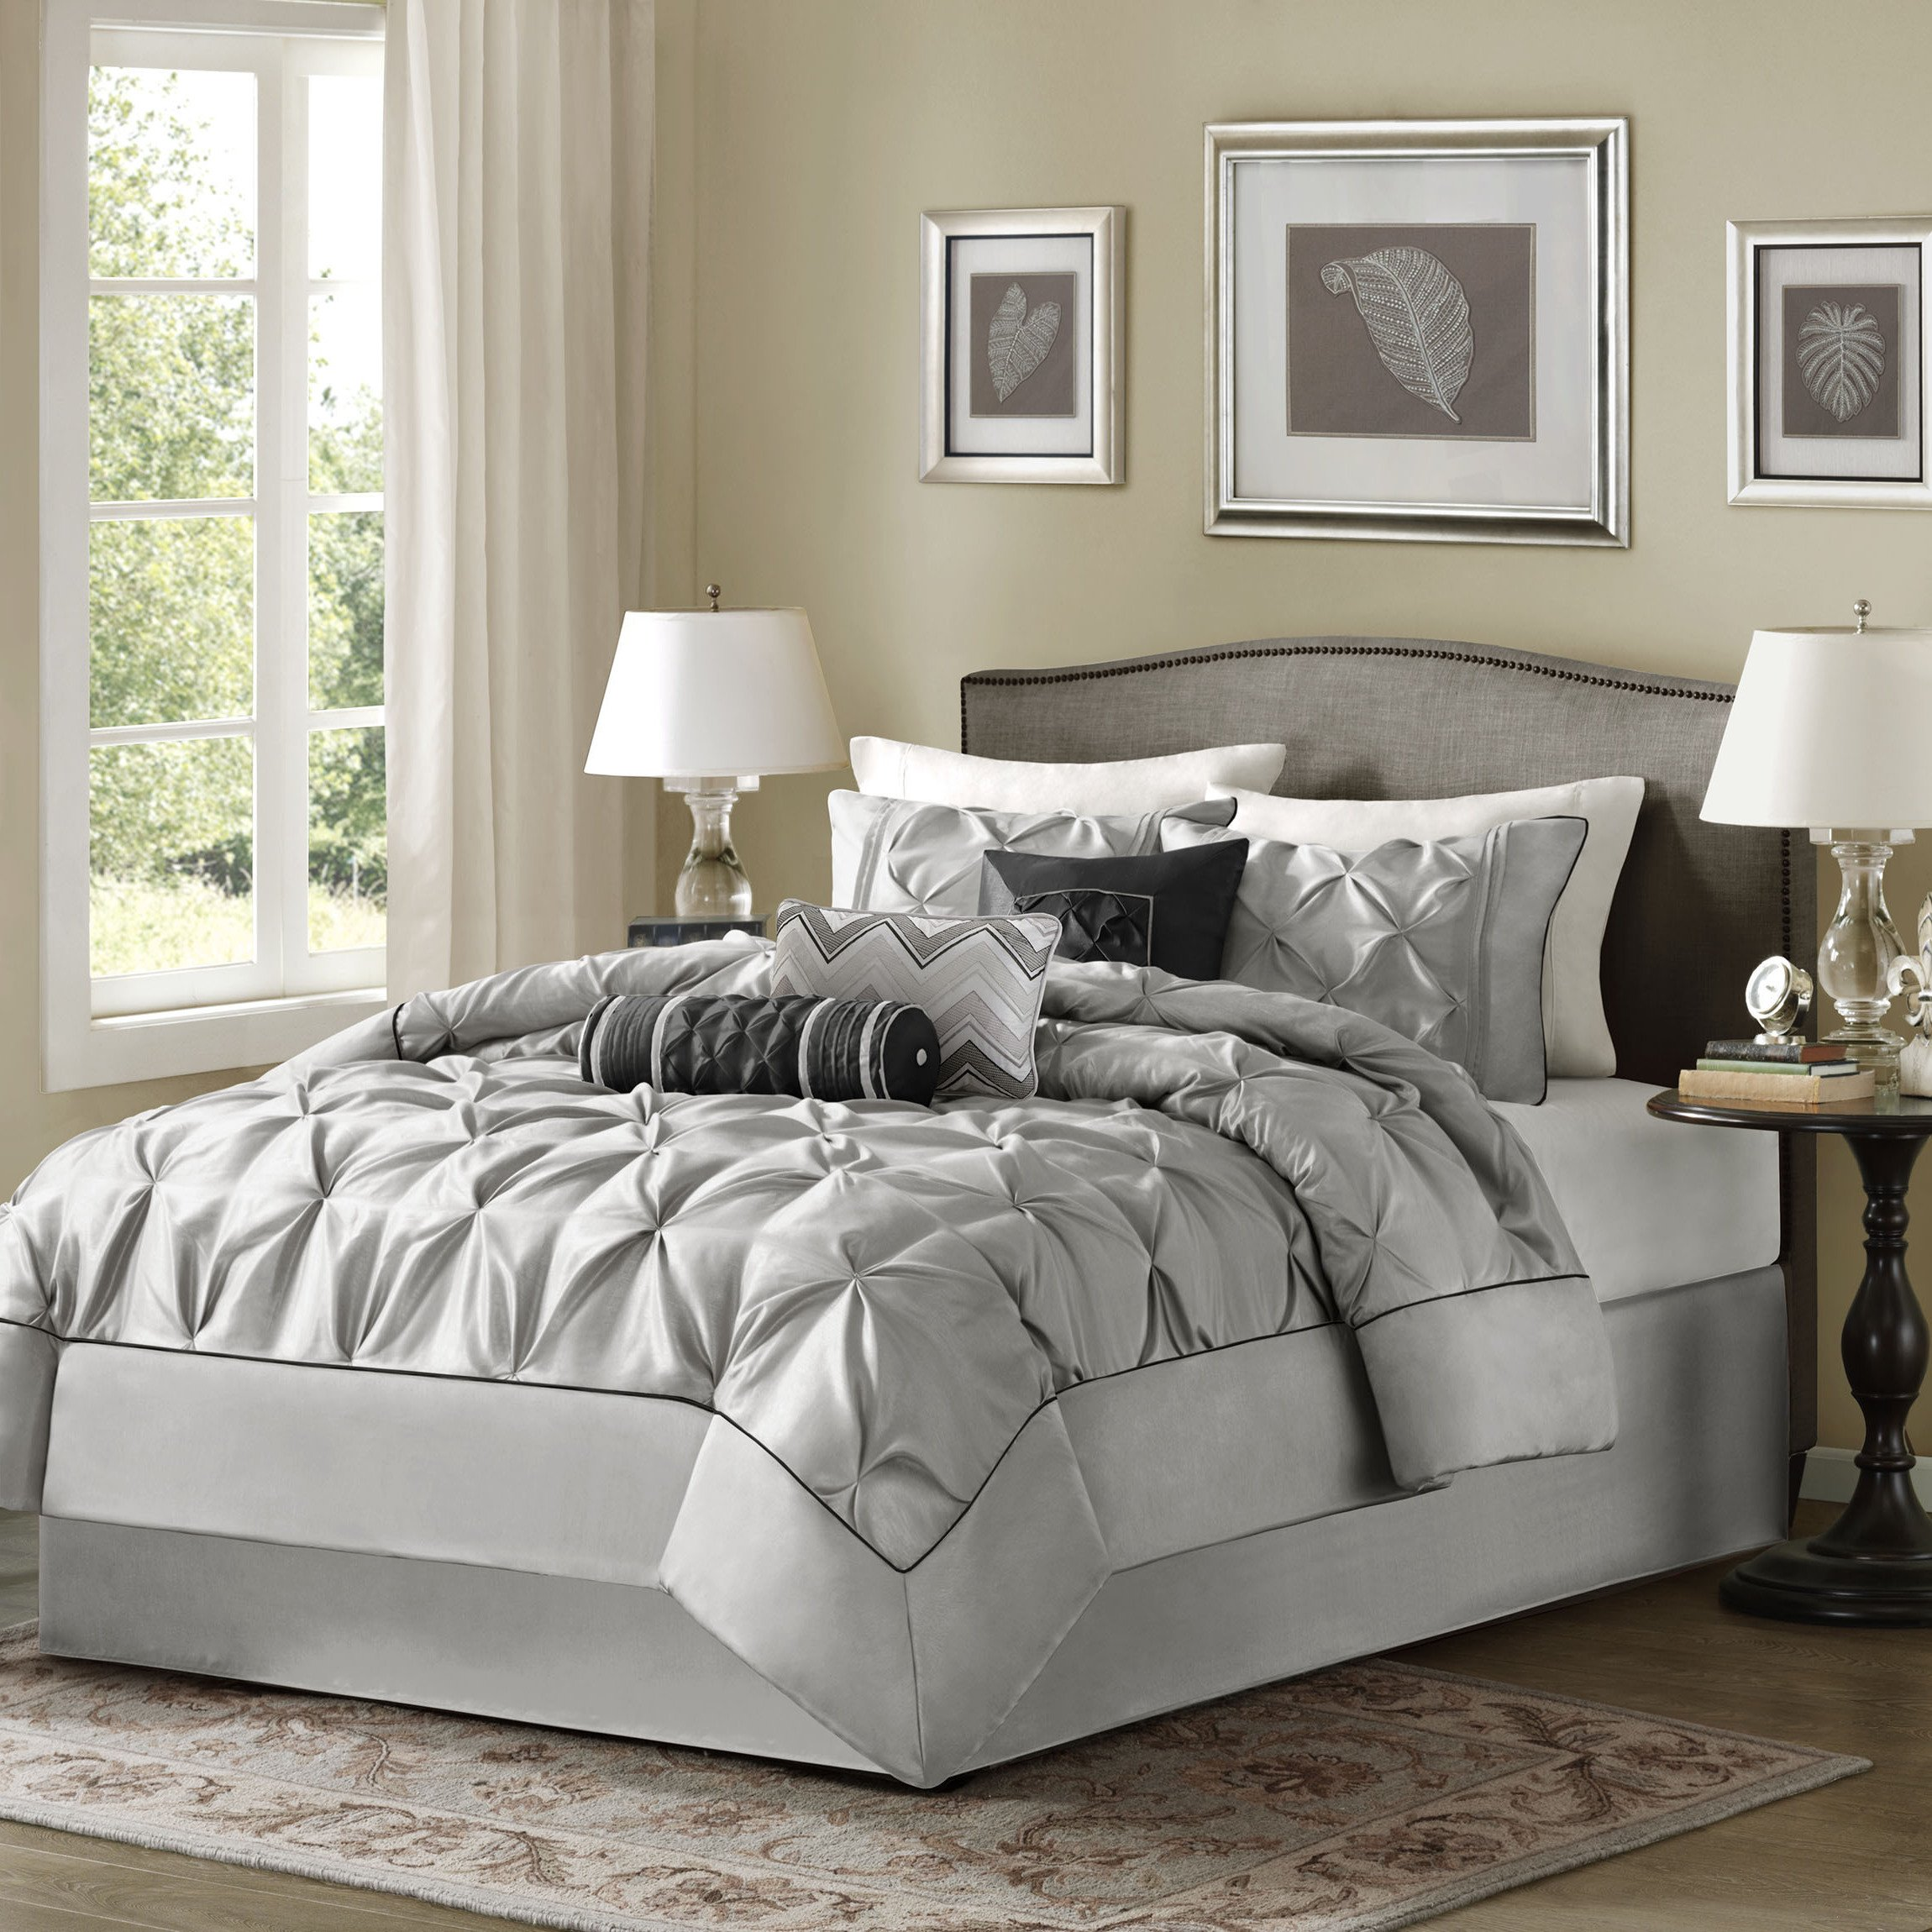 7 Piece Silver Grey Puckered Comforter Queen Set, Gray Pintuck Solid Color Adult Bedding Master Bedroom Modern Stylish Textured Tufted Pattern Classic Elegant Themed Traditional, Polyester Polyoni